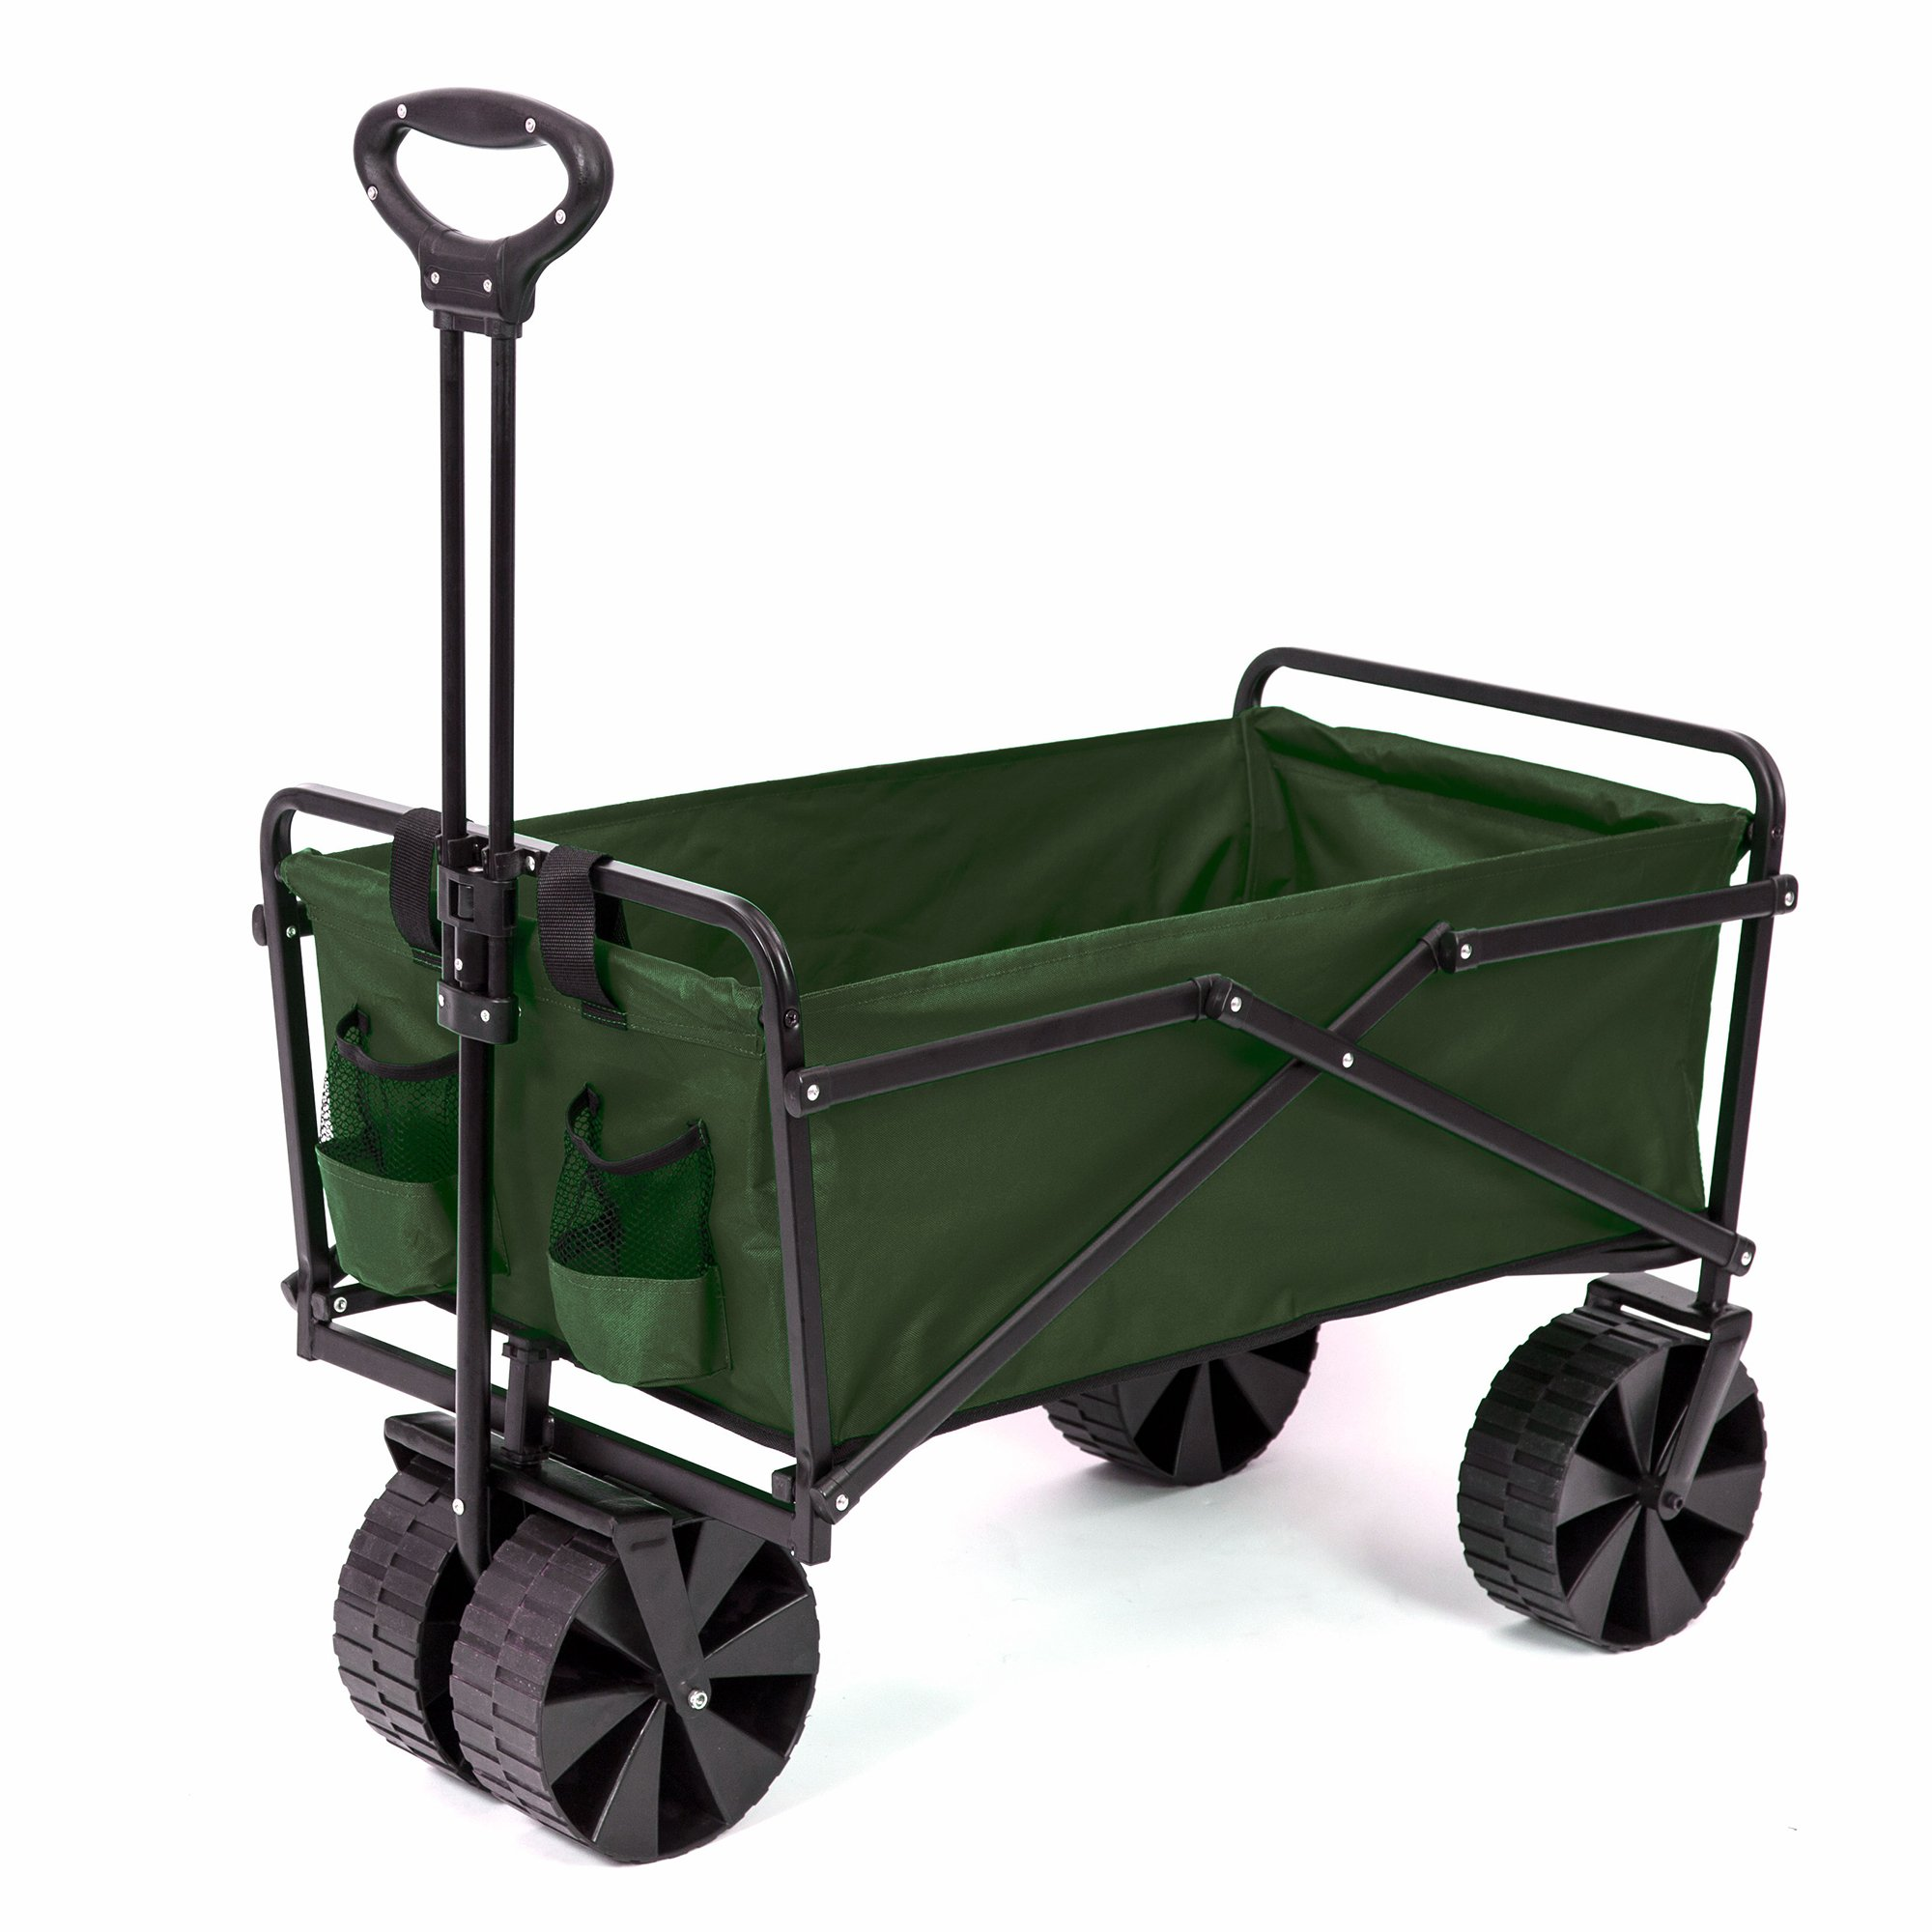 Seina Collapsible Utility Beach Wagon and Cart, Green